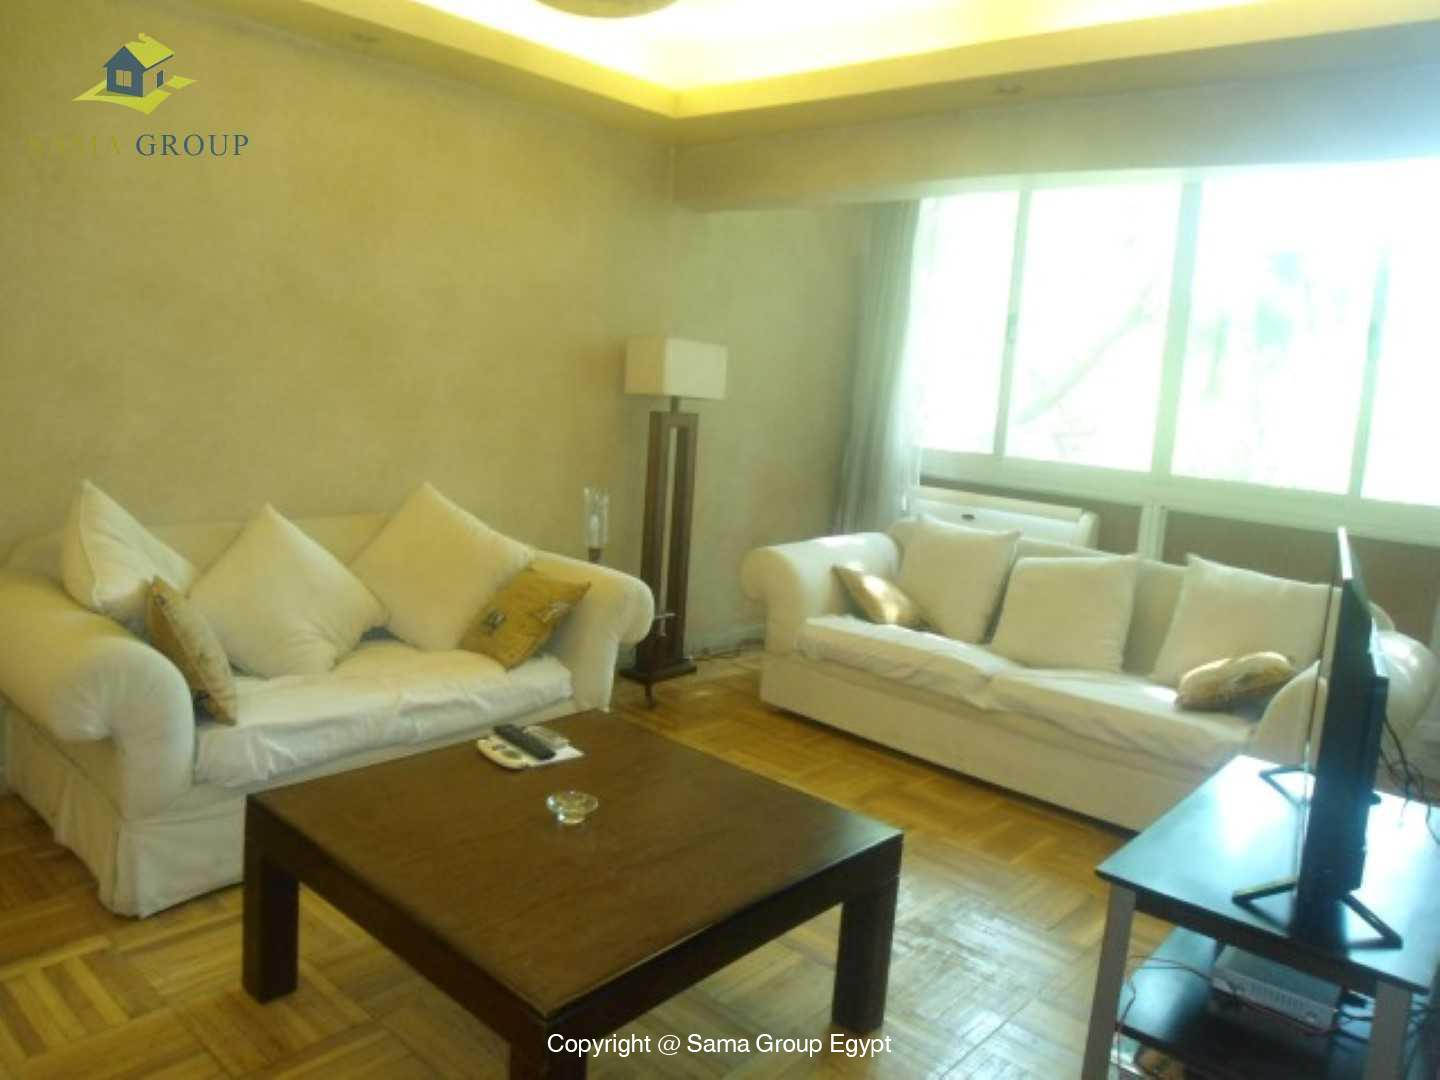 Apartment For Rent In Maadi Degla,Modern Furnished,Apartment NO #12